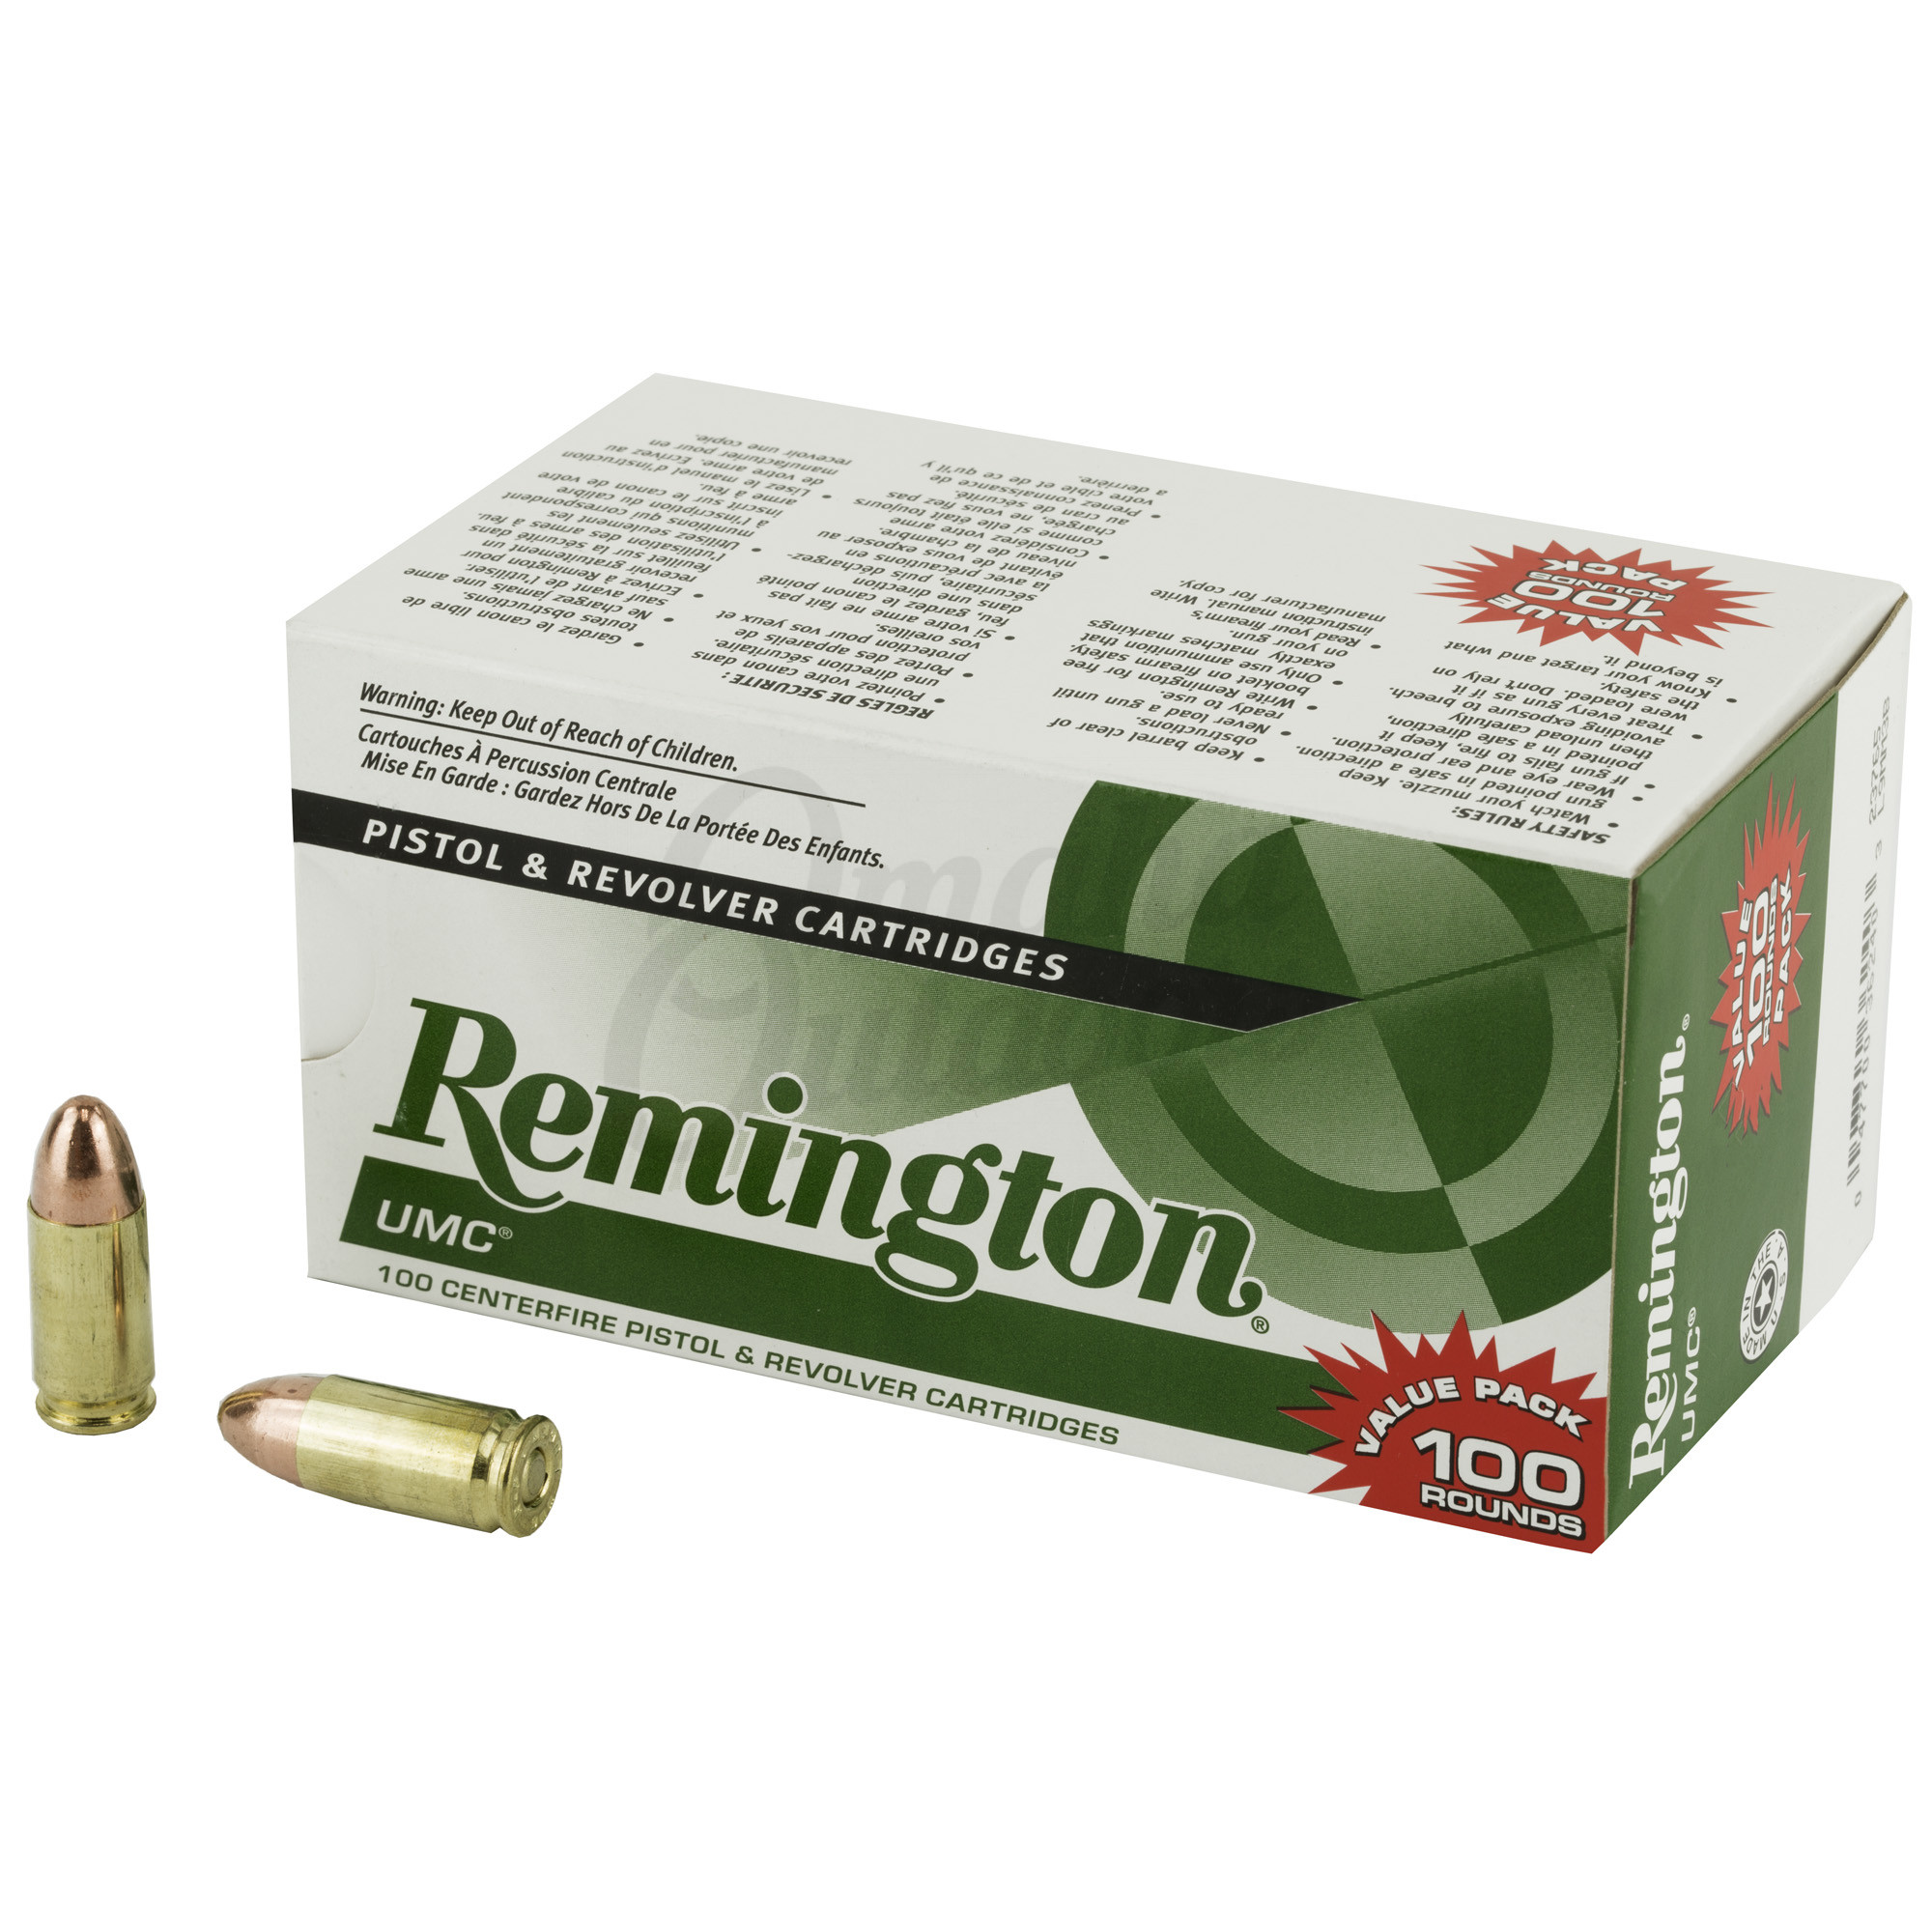 Remington UMC 9mm Ammo 115 Grain FMJ 100 Round Box 23765